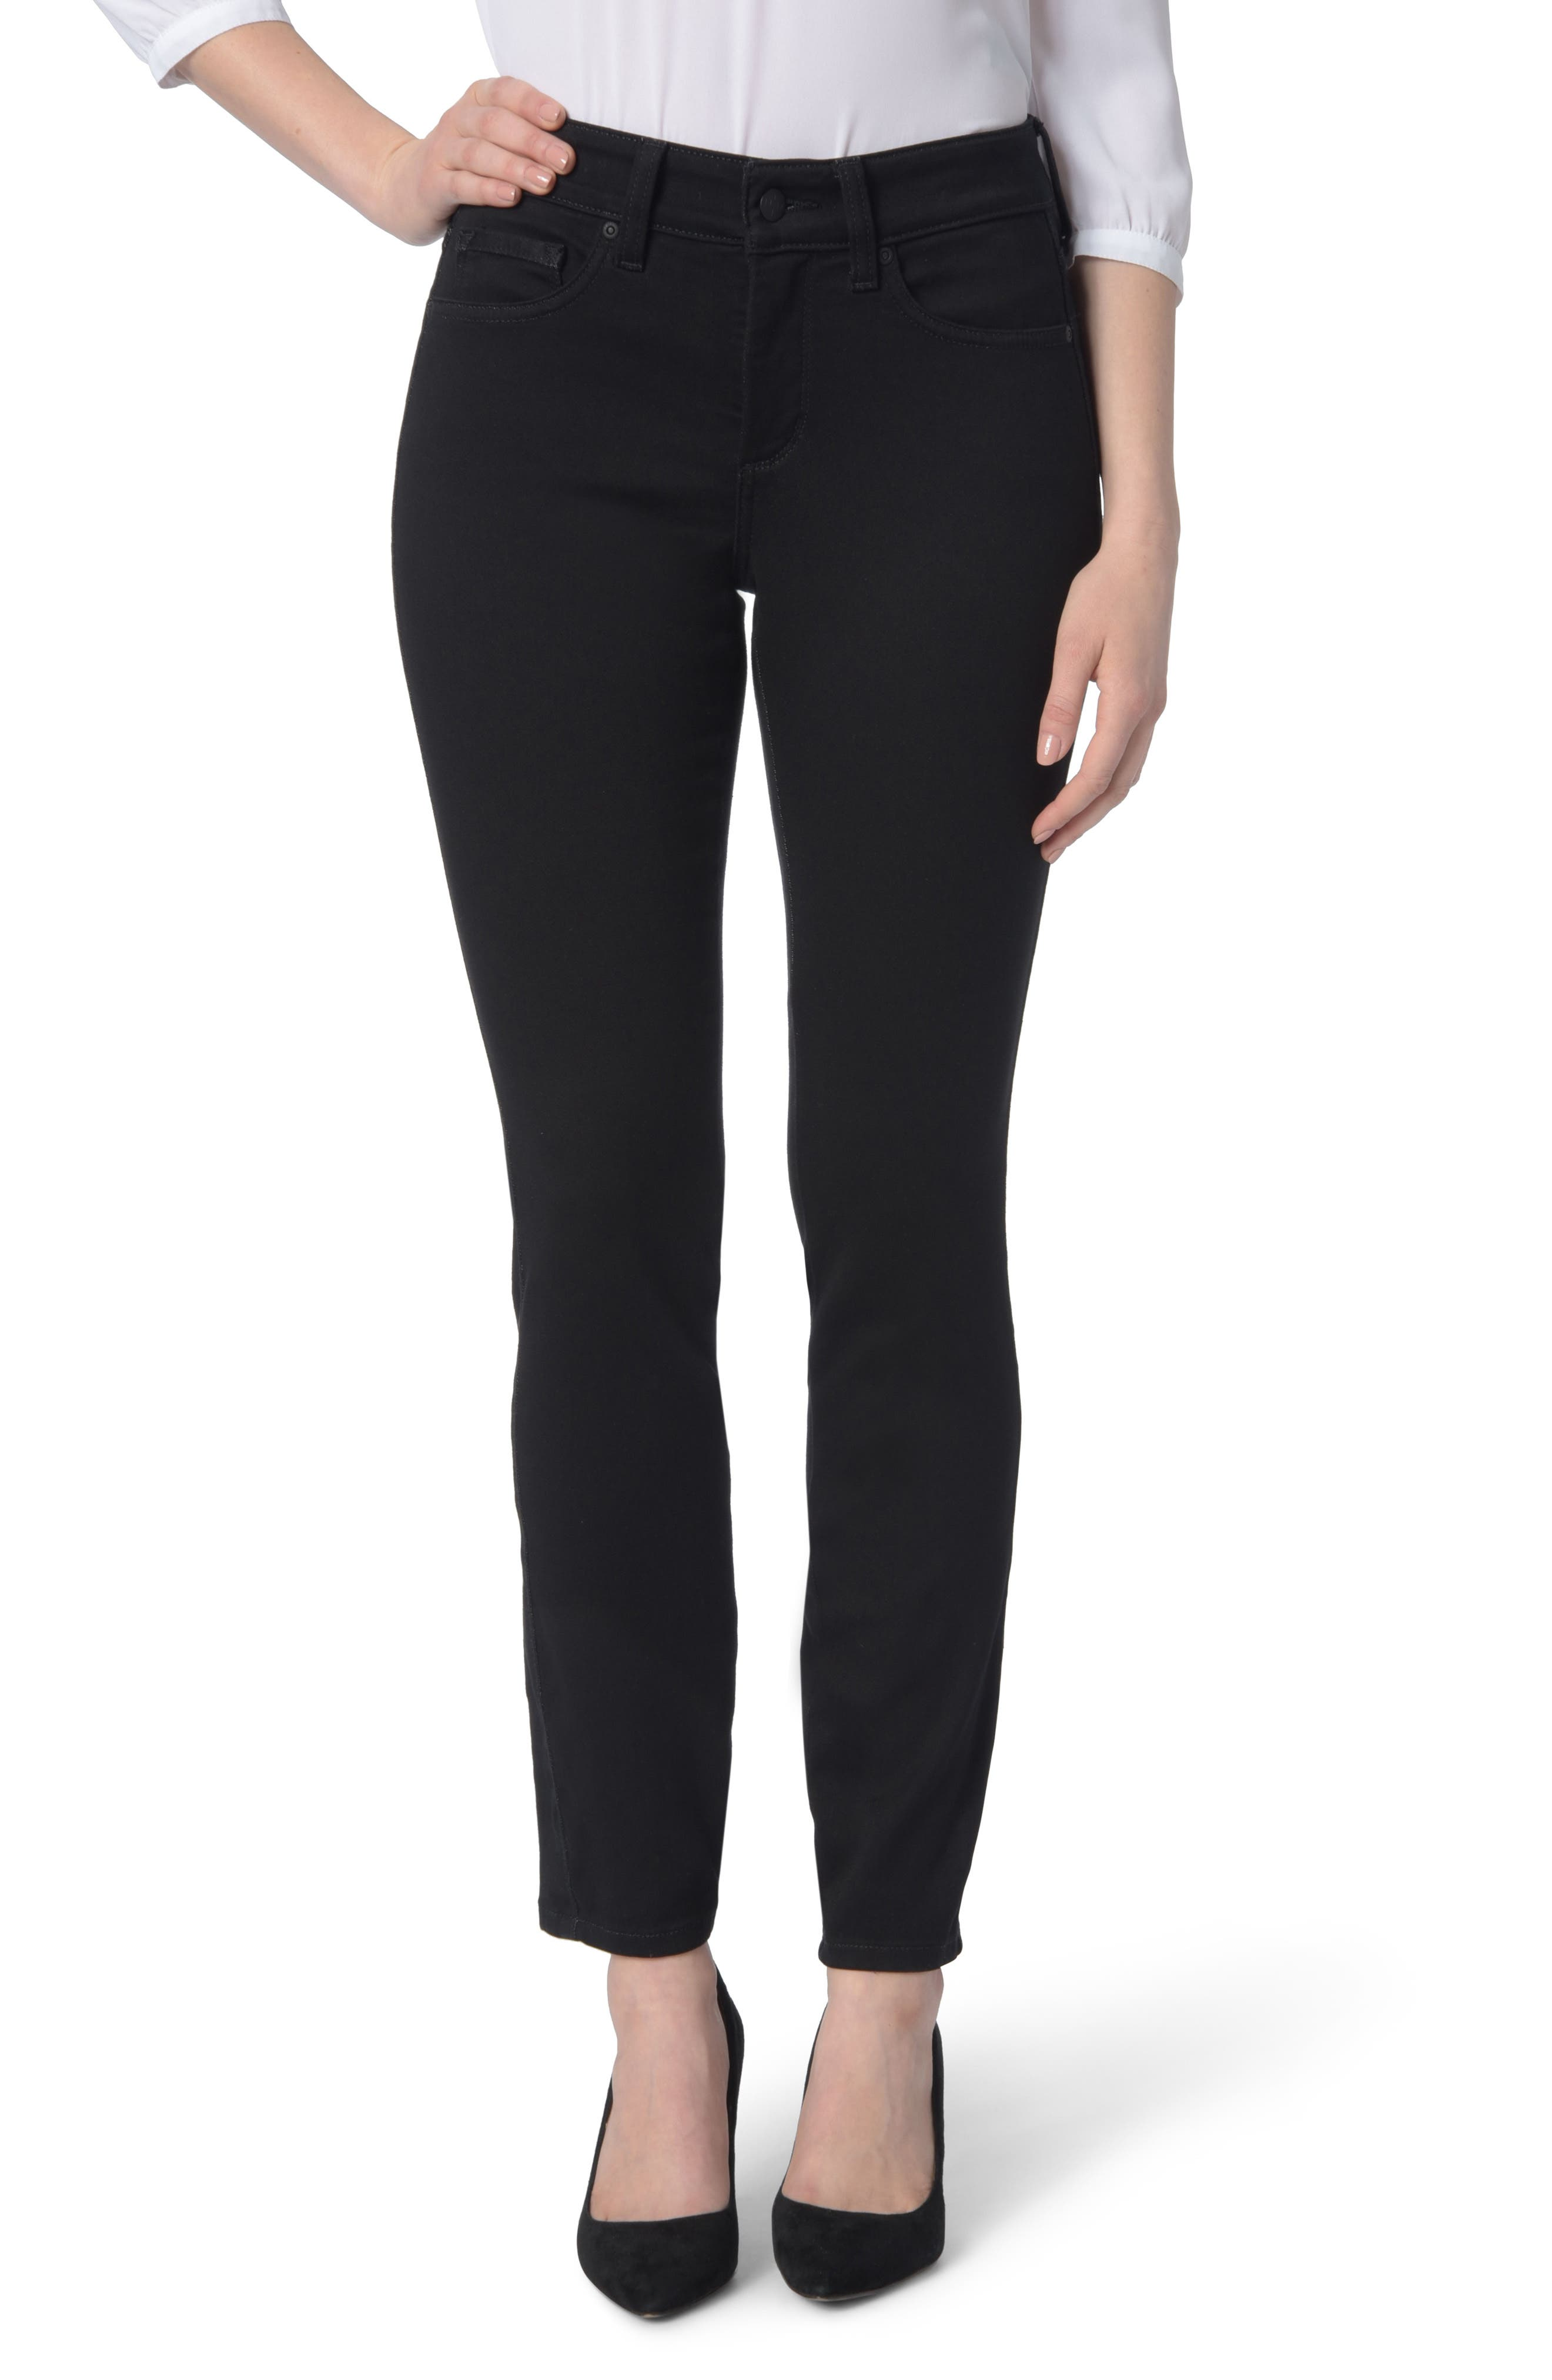 Ami High Waist Colored Stretch Skinny Jeans,                         Main,                         color, BLACK